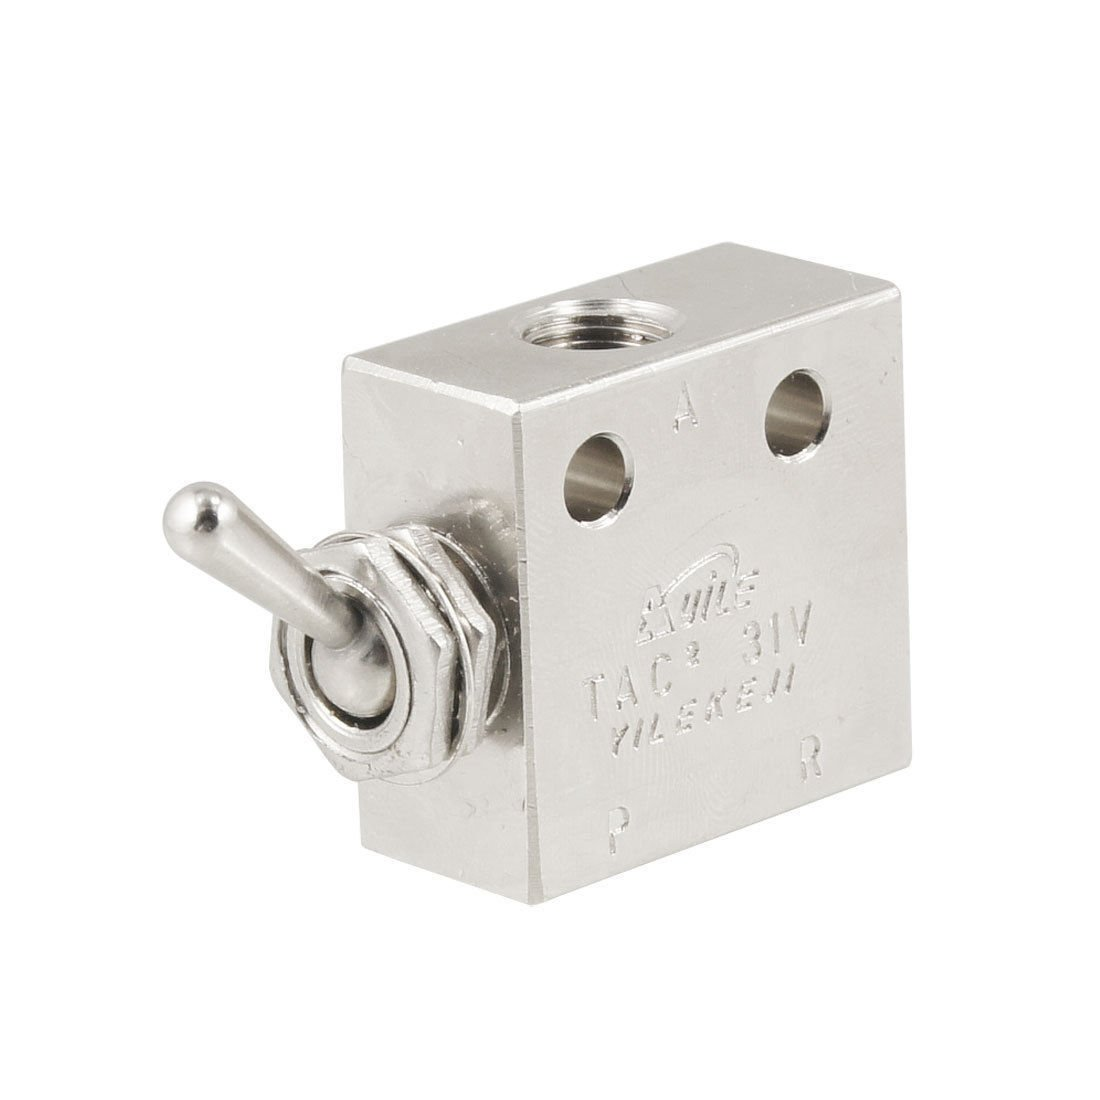 2 Position 3 Way Air Pneumatic Knob Control ON OFF Toggle Valve TAC2-31V